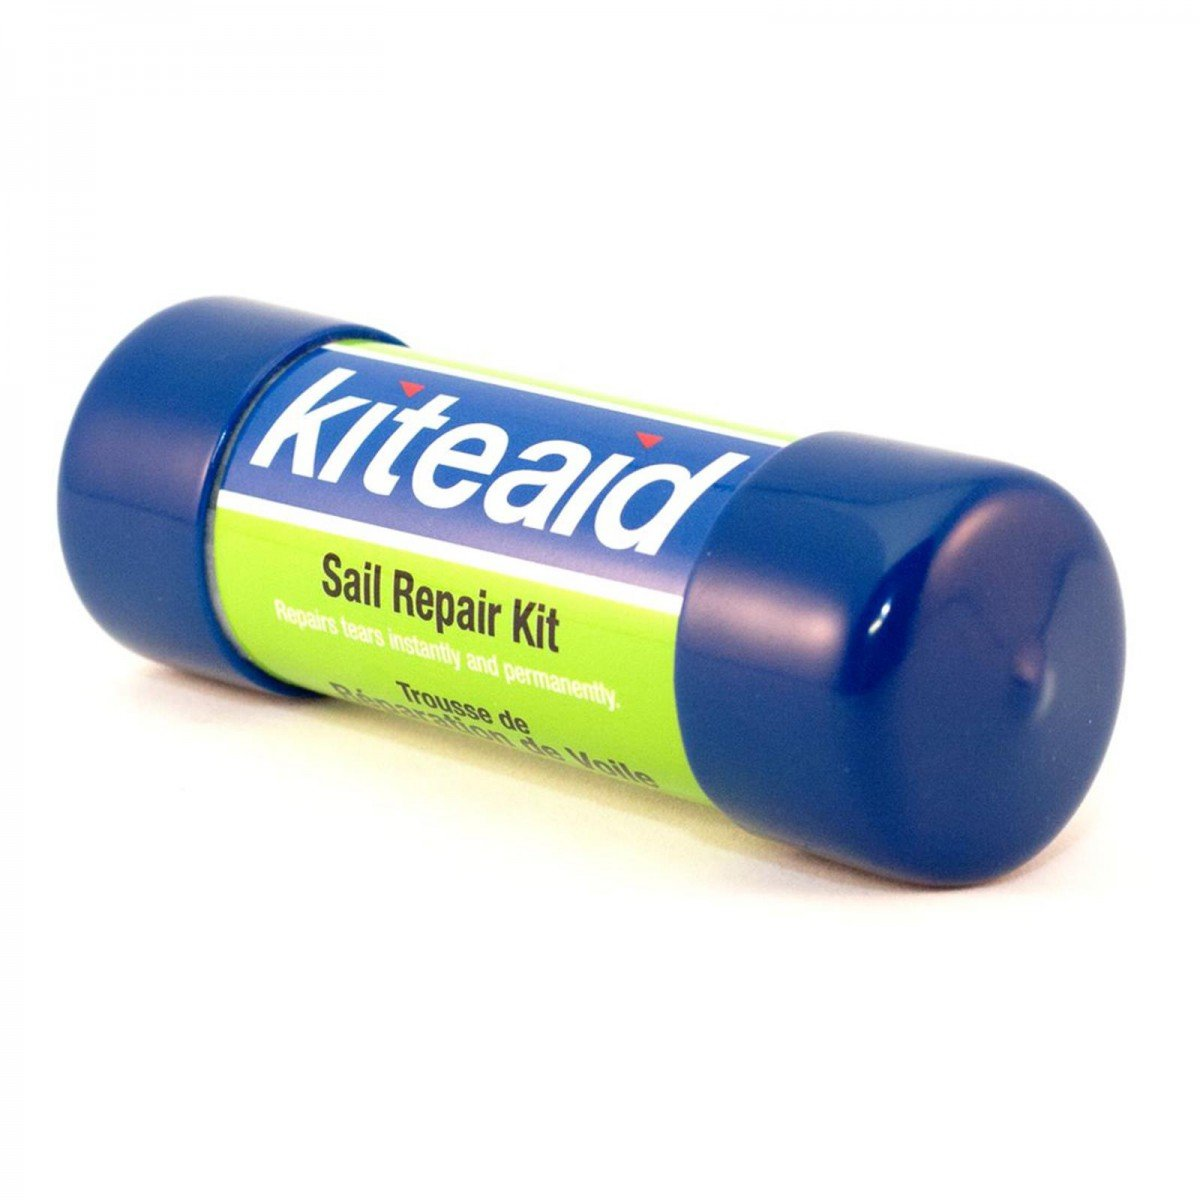 kiteaid riparazione Kite Sail Tape Repair Kit